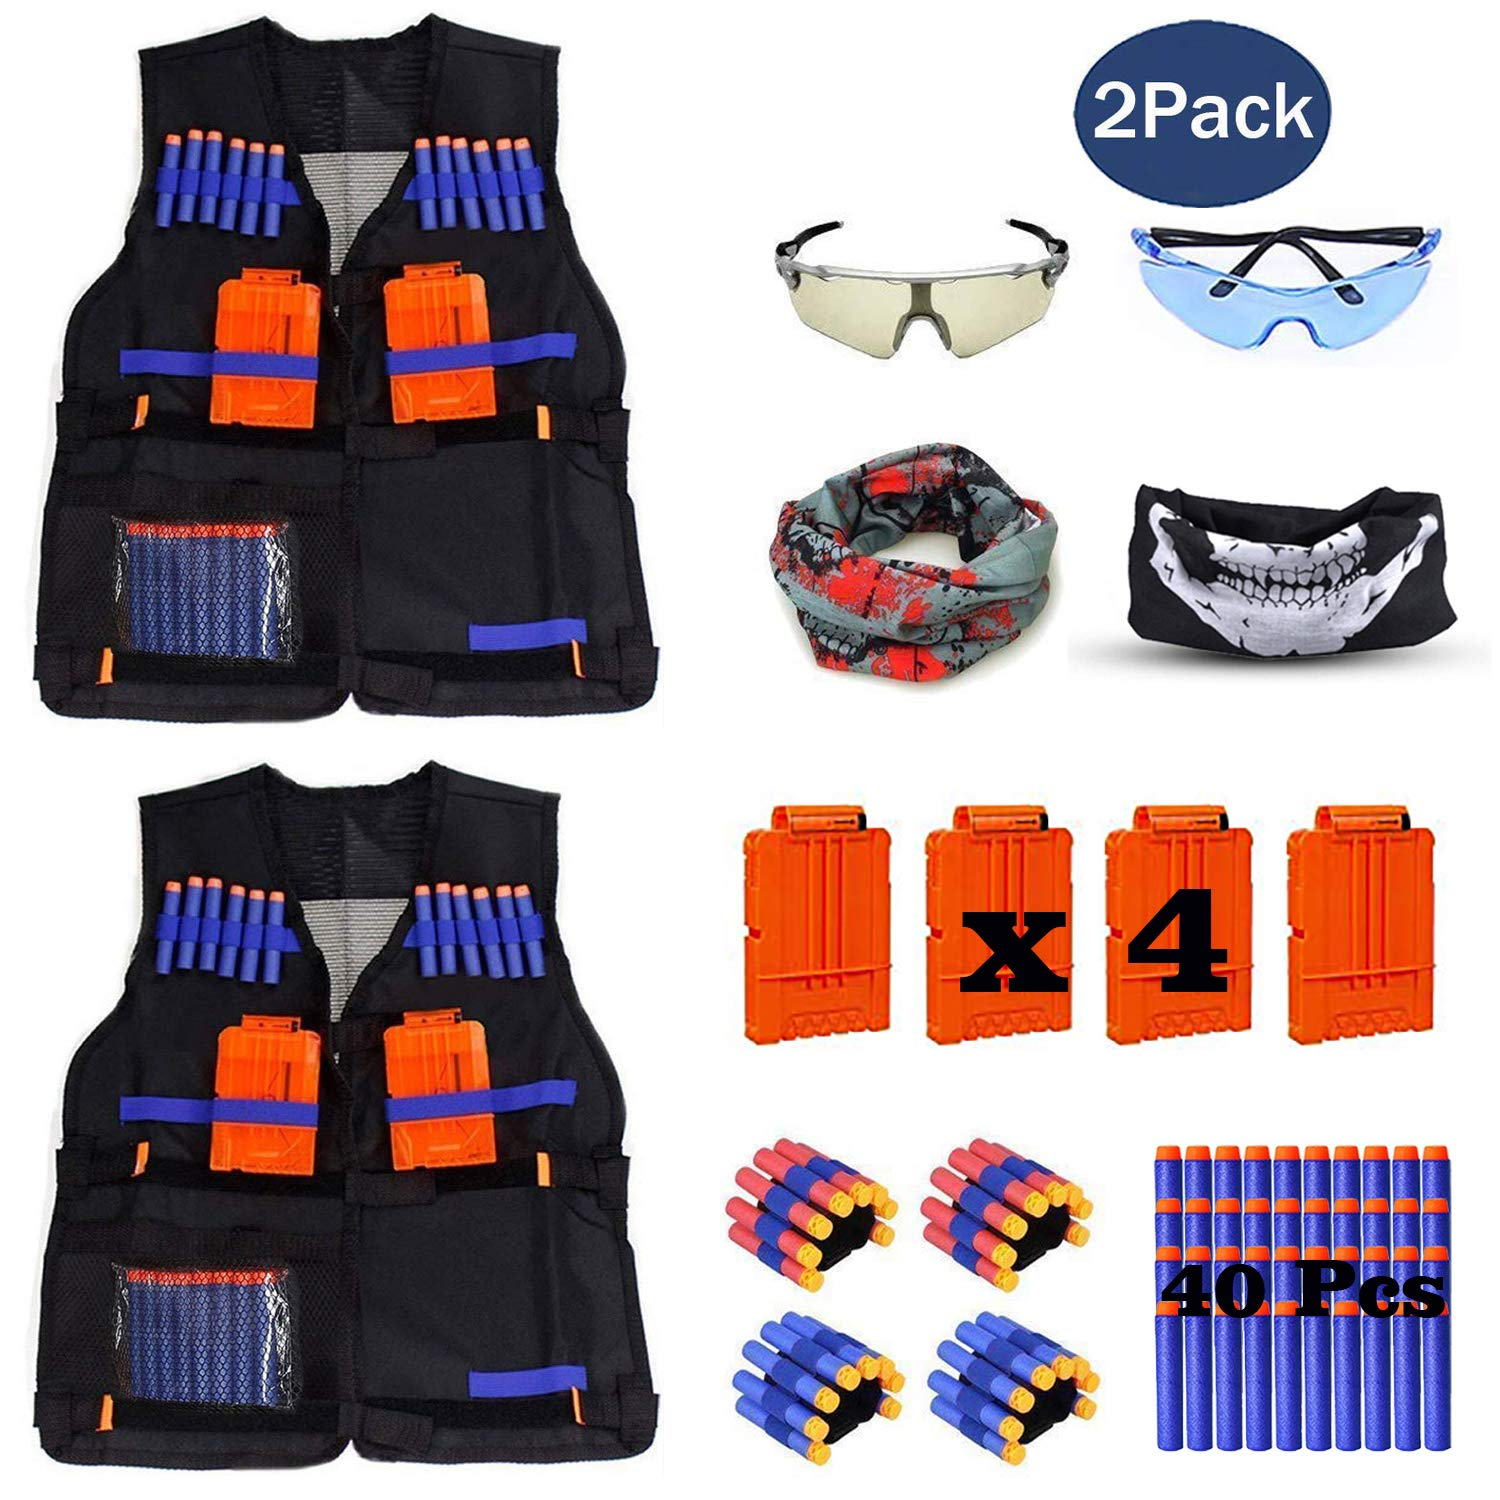 b559d82167e 2 Pack Set Kids Tactical Jacket Vest Kit for Nerf N-Strike Gun Wars ...